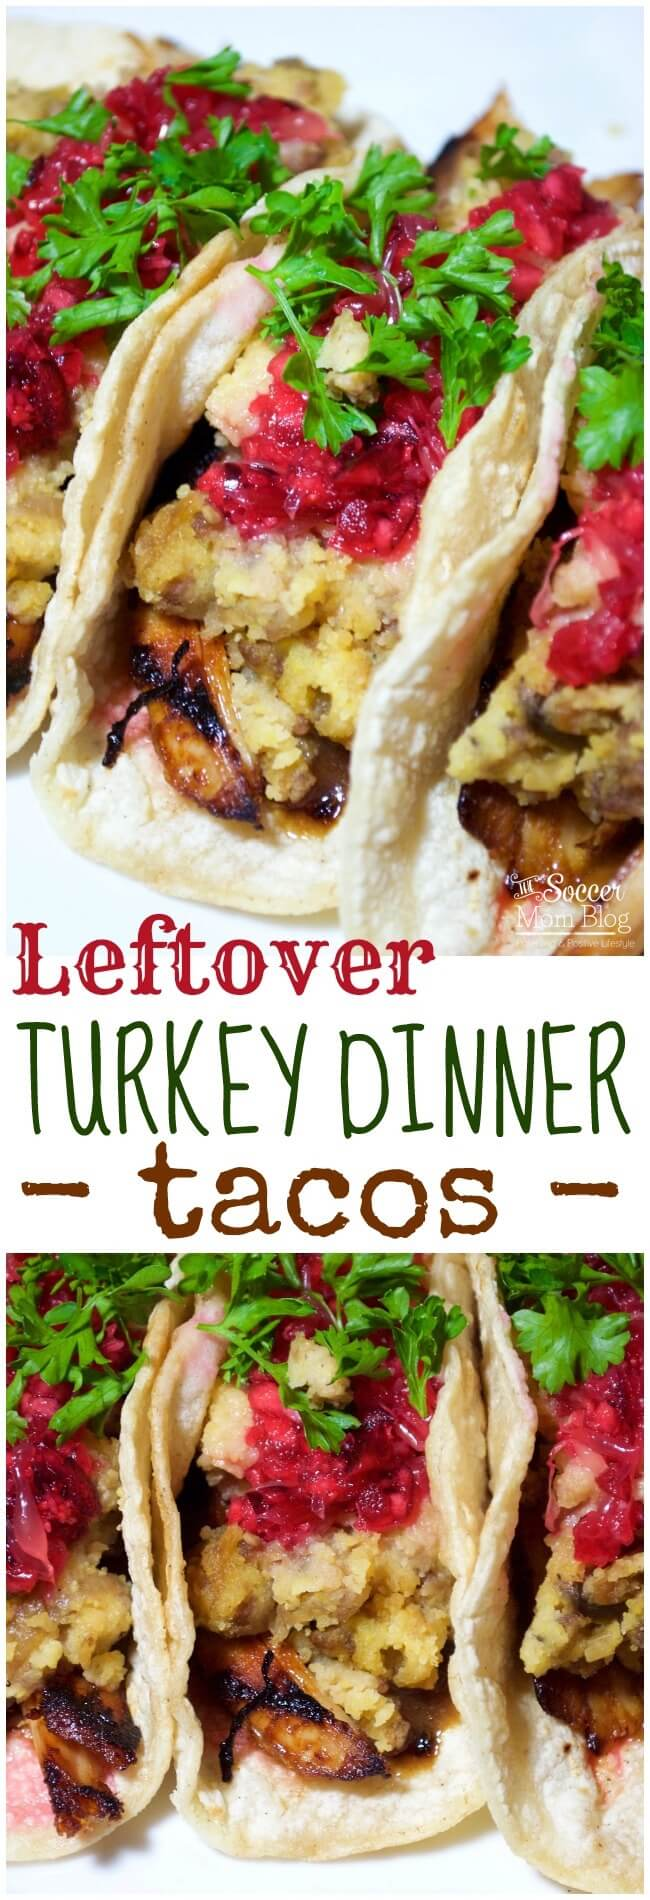 Forget a boring old sandwich! These Leftover Turkey Dinner Tacos are ready in minutes, packed with bold flavor, and a lighter alternative to bread!